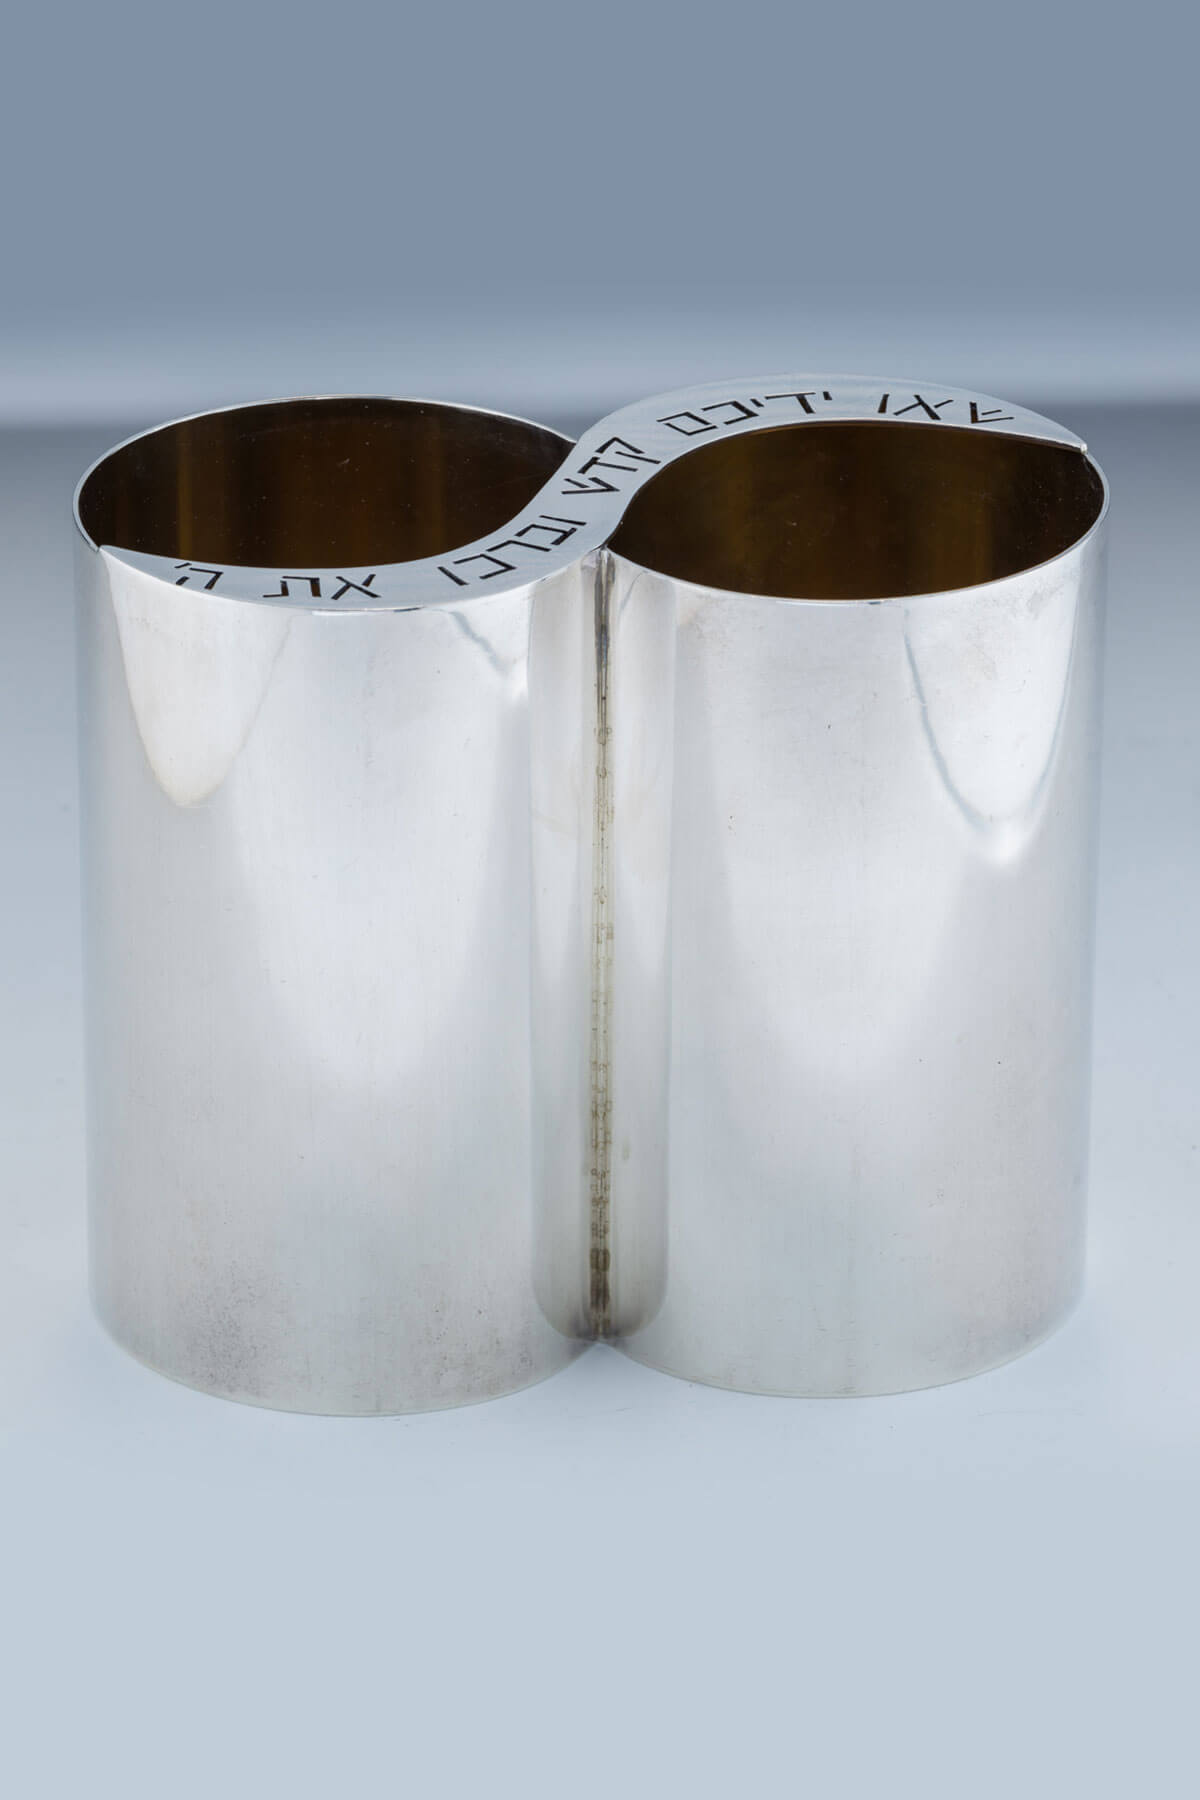 129. A Sterling Silver Washing Cup by Rafi Landau